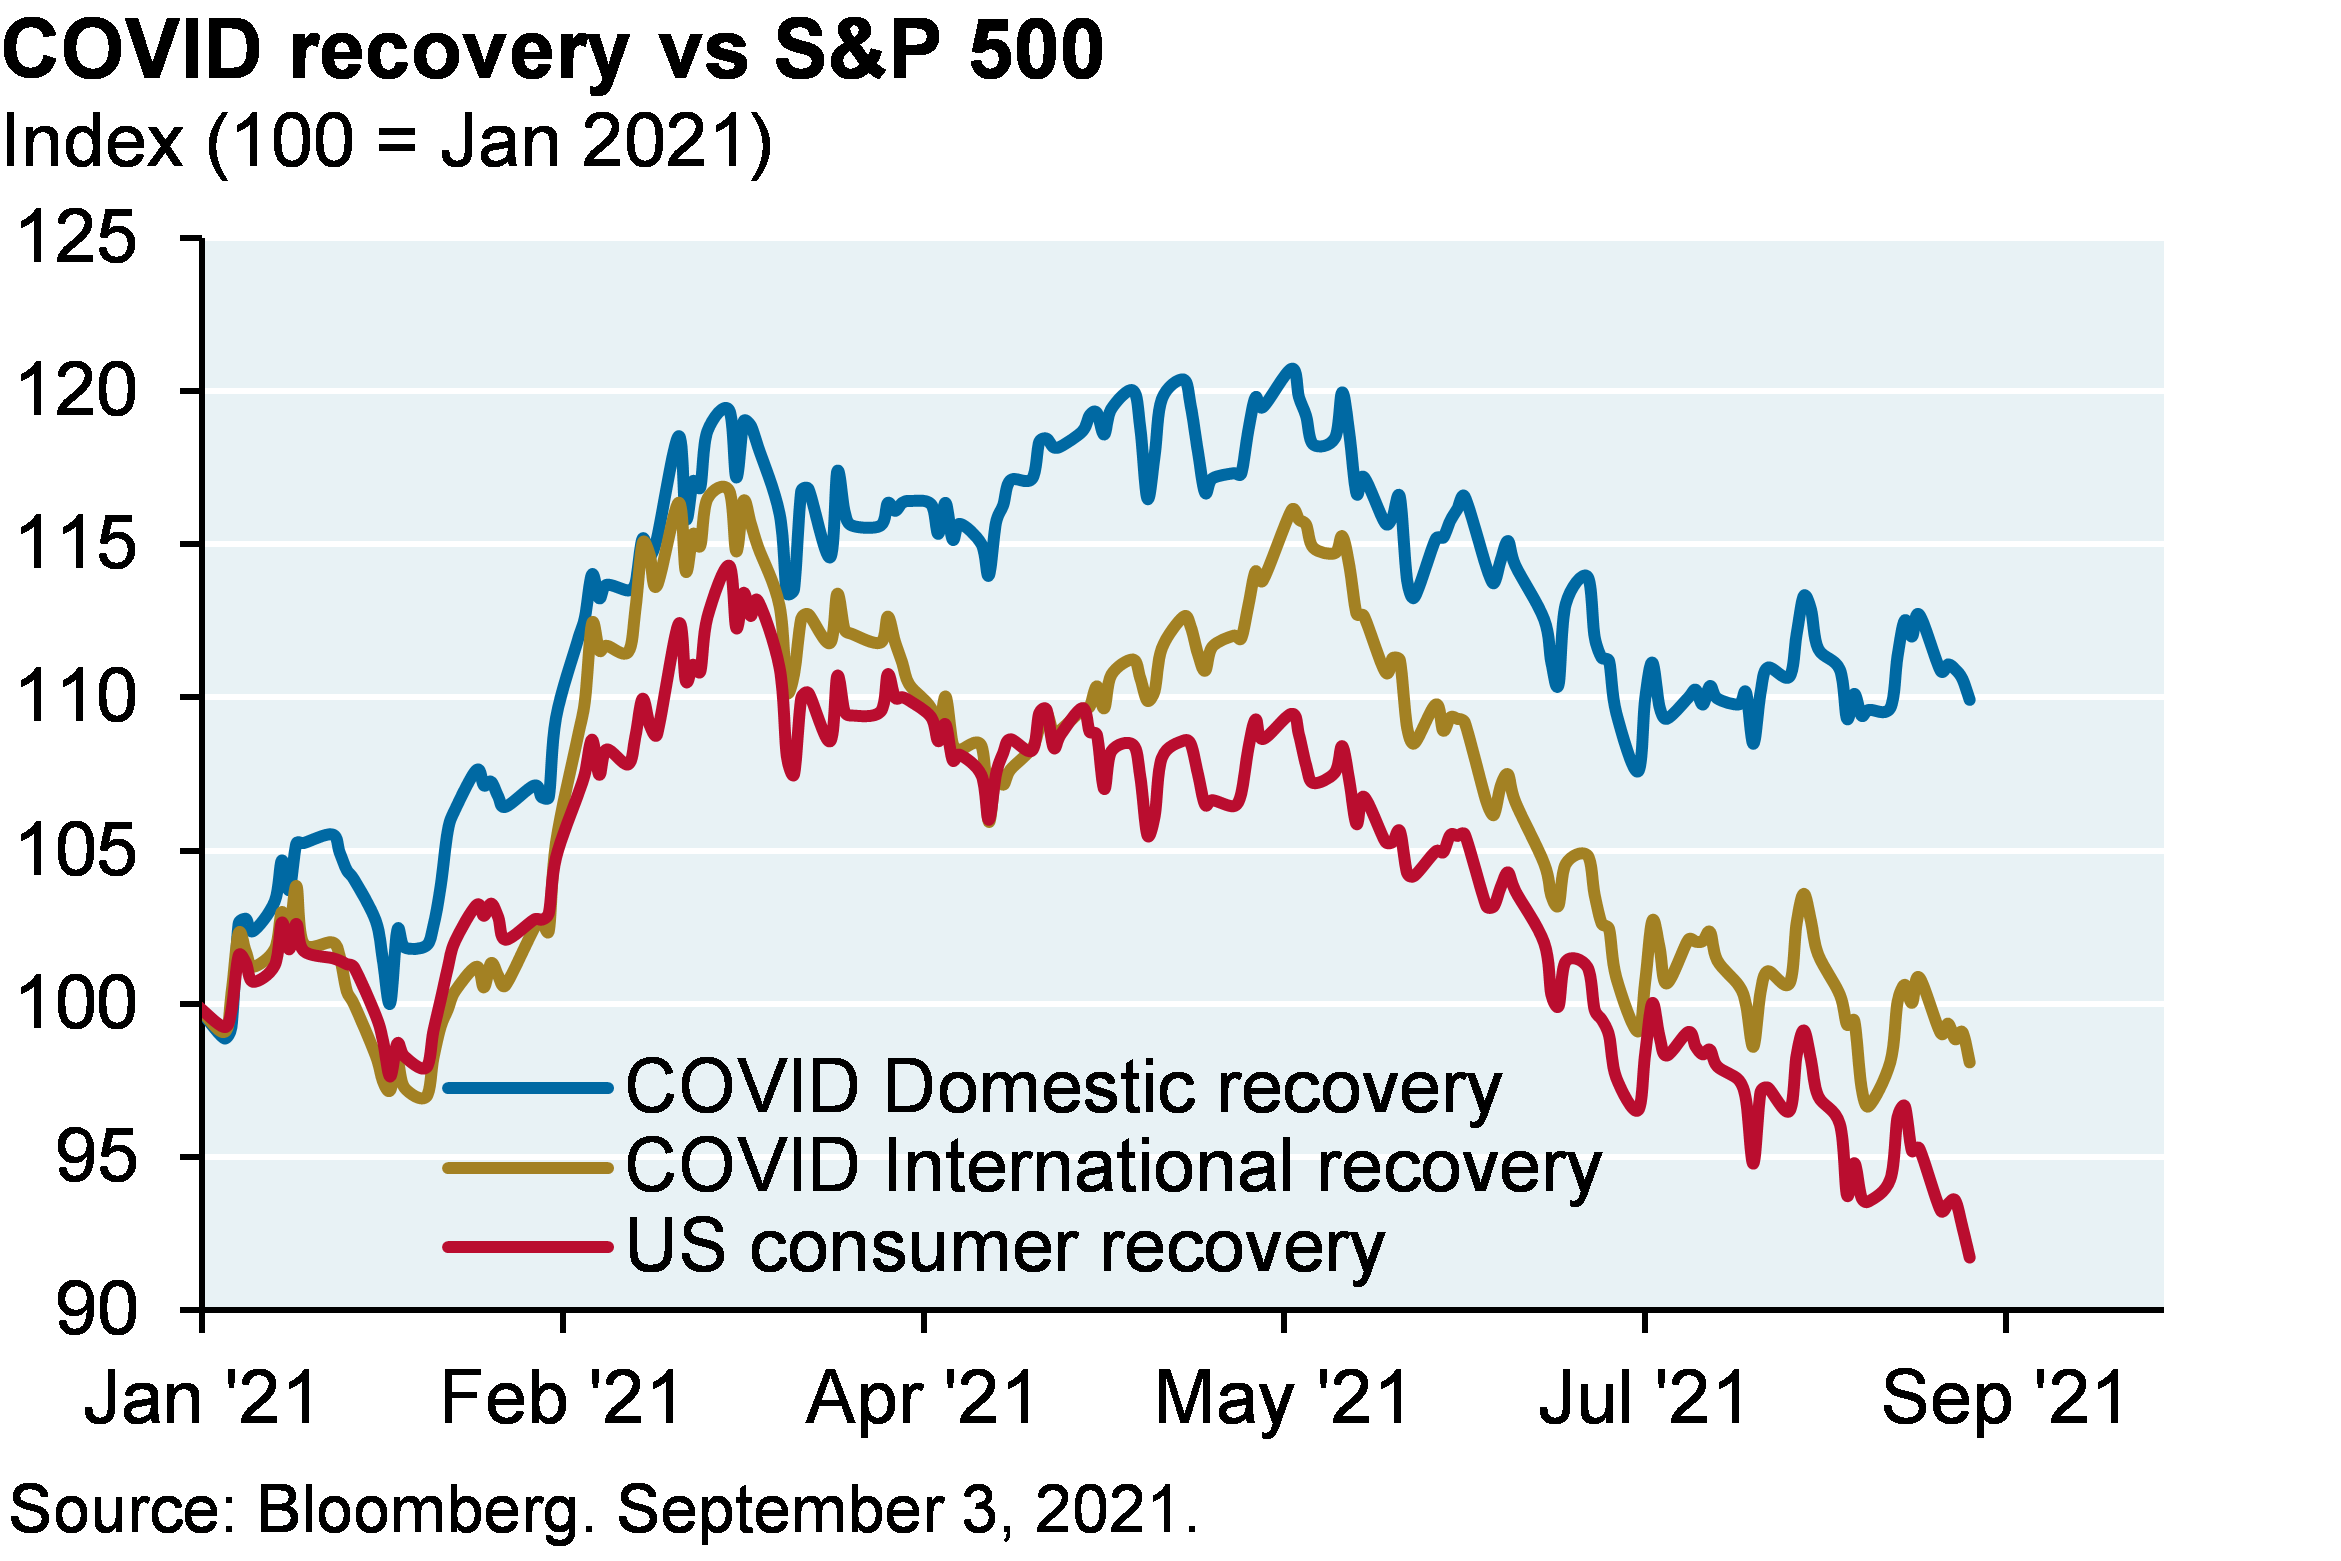 Line chart shows the COVID recovery vs S&P 500 shown as an index where 100 represents January 2021 levels. Chart shows the COVID domestic recovery is around 112, the COVID international recovery is at 100, and the US consumer recovery is around 95.